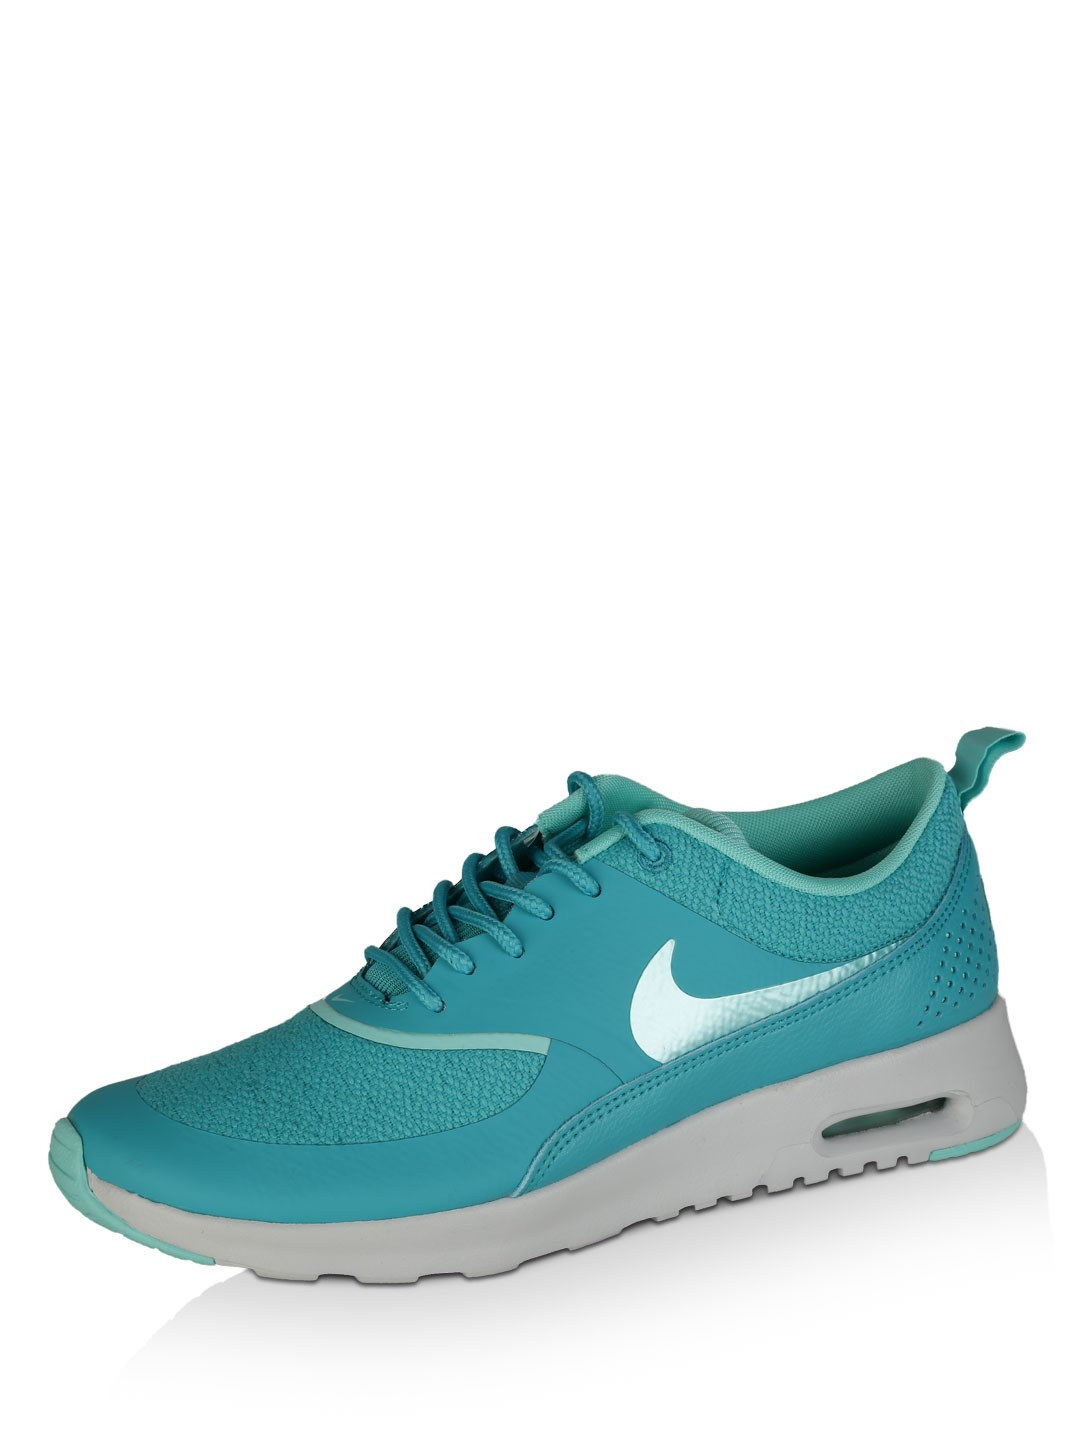 the best 50% price where to buy Buy Nike DUSTY CACTUS/HYPR TRQ-PR PLTNM Wmns Air Max Thea ...